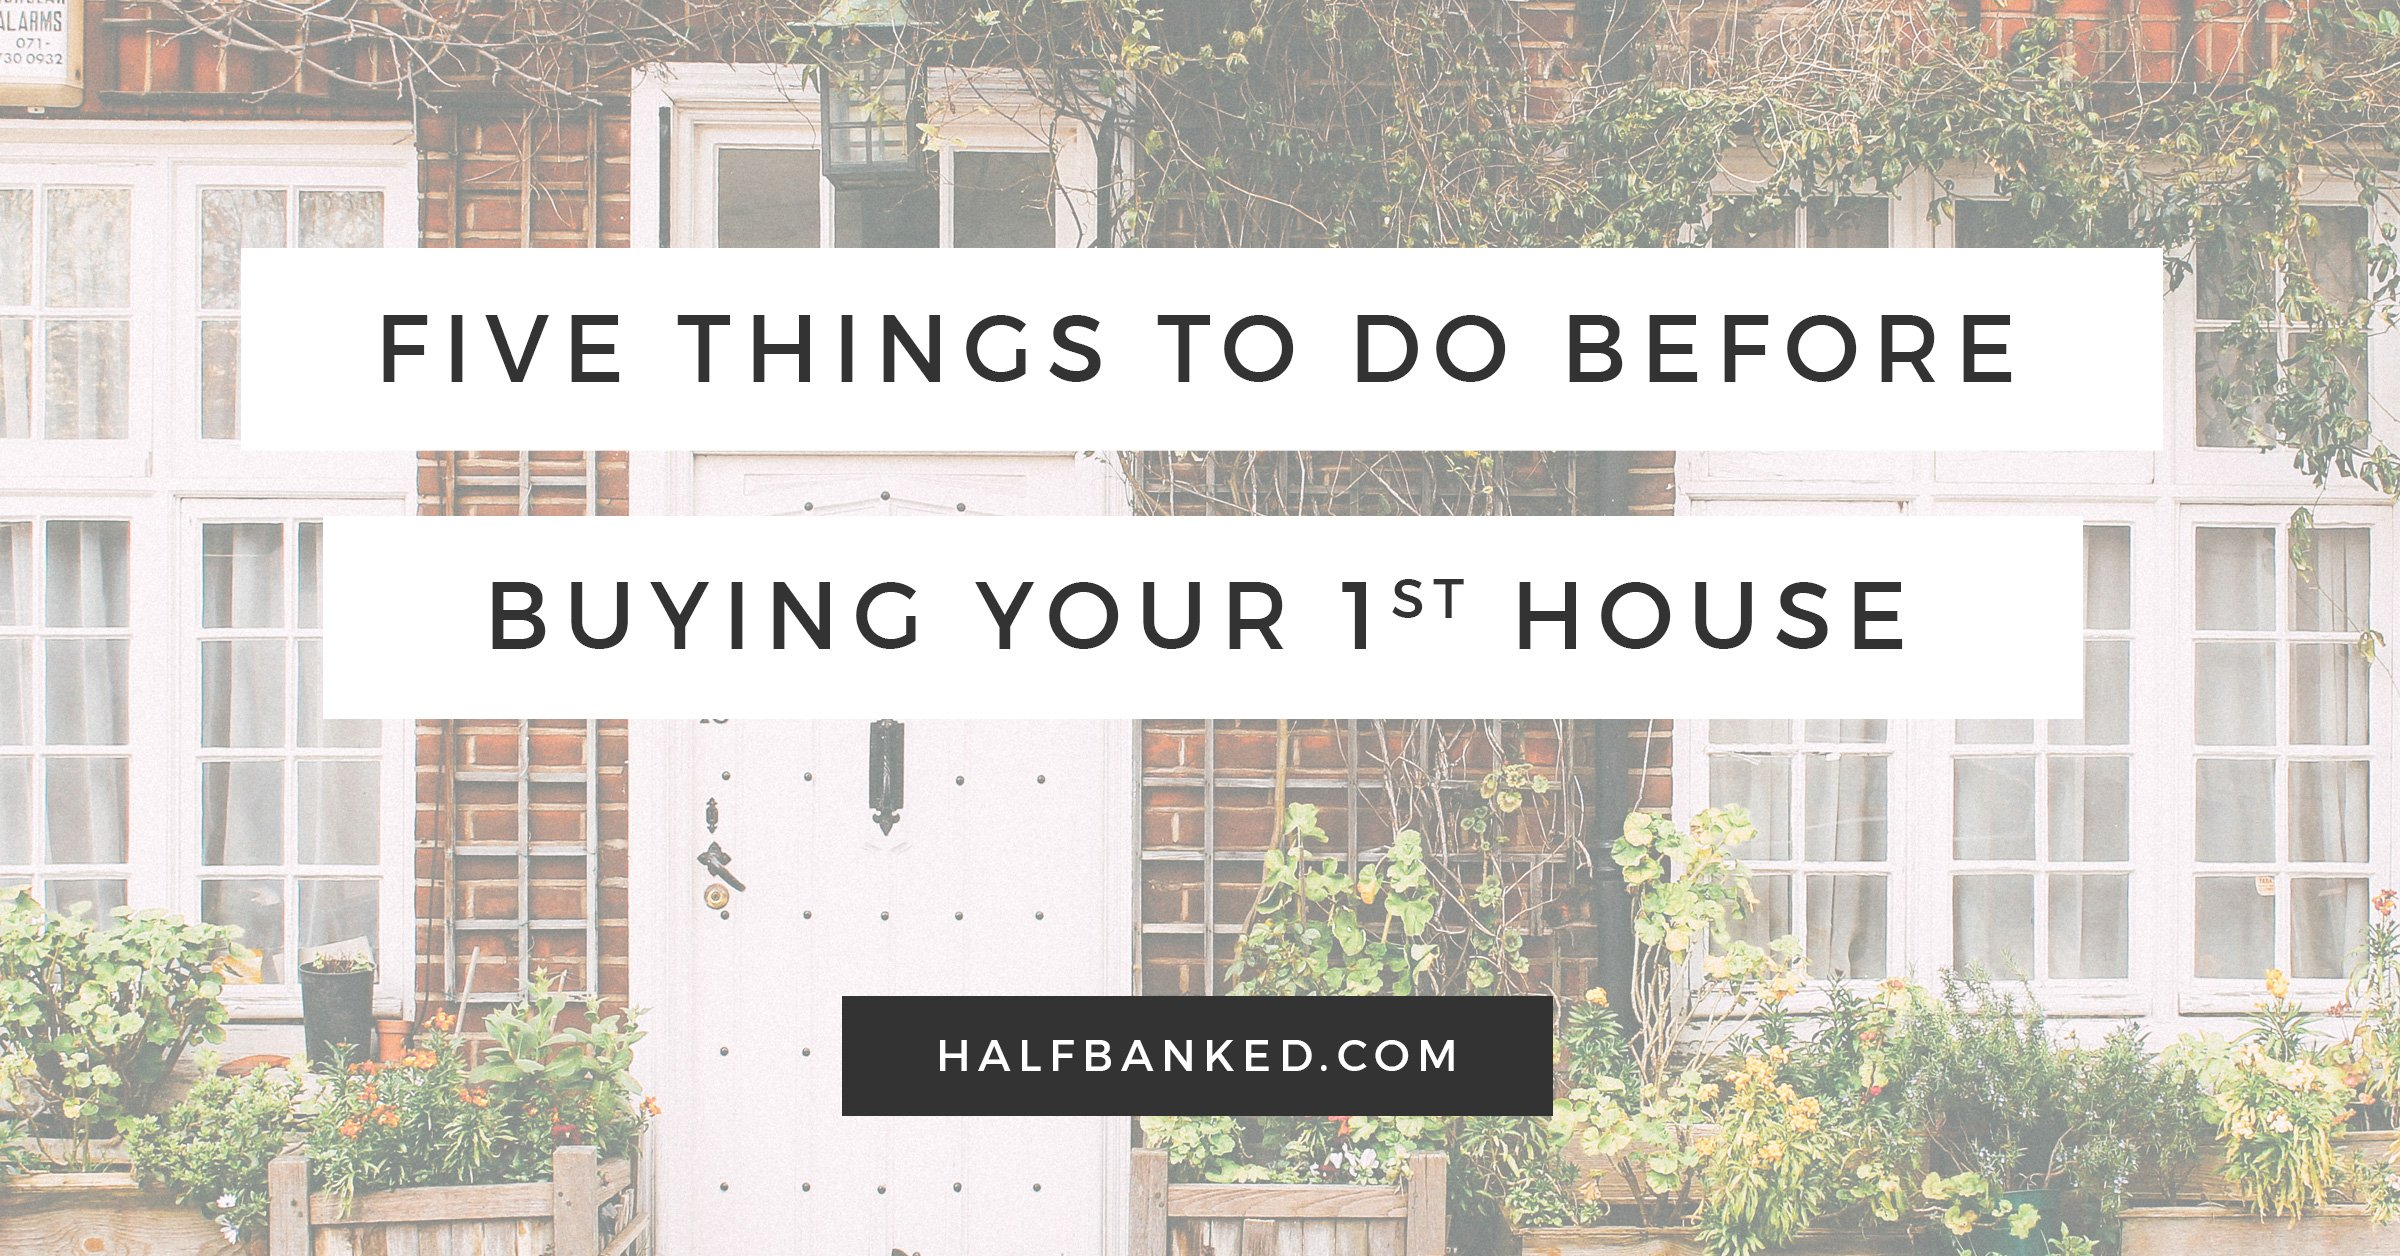 Five things to do before buying a house half banked for Things to do to buy a house